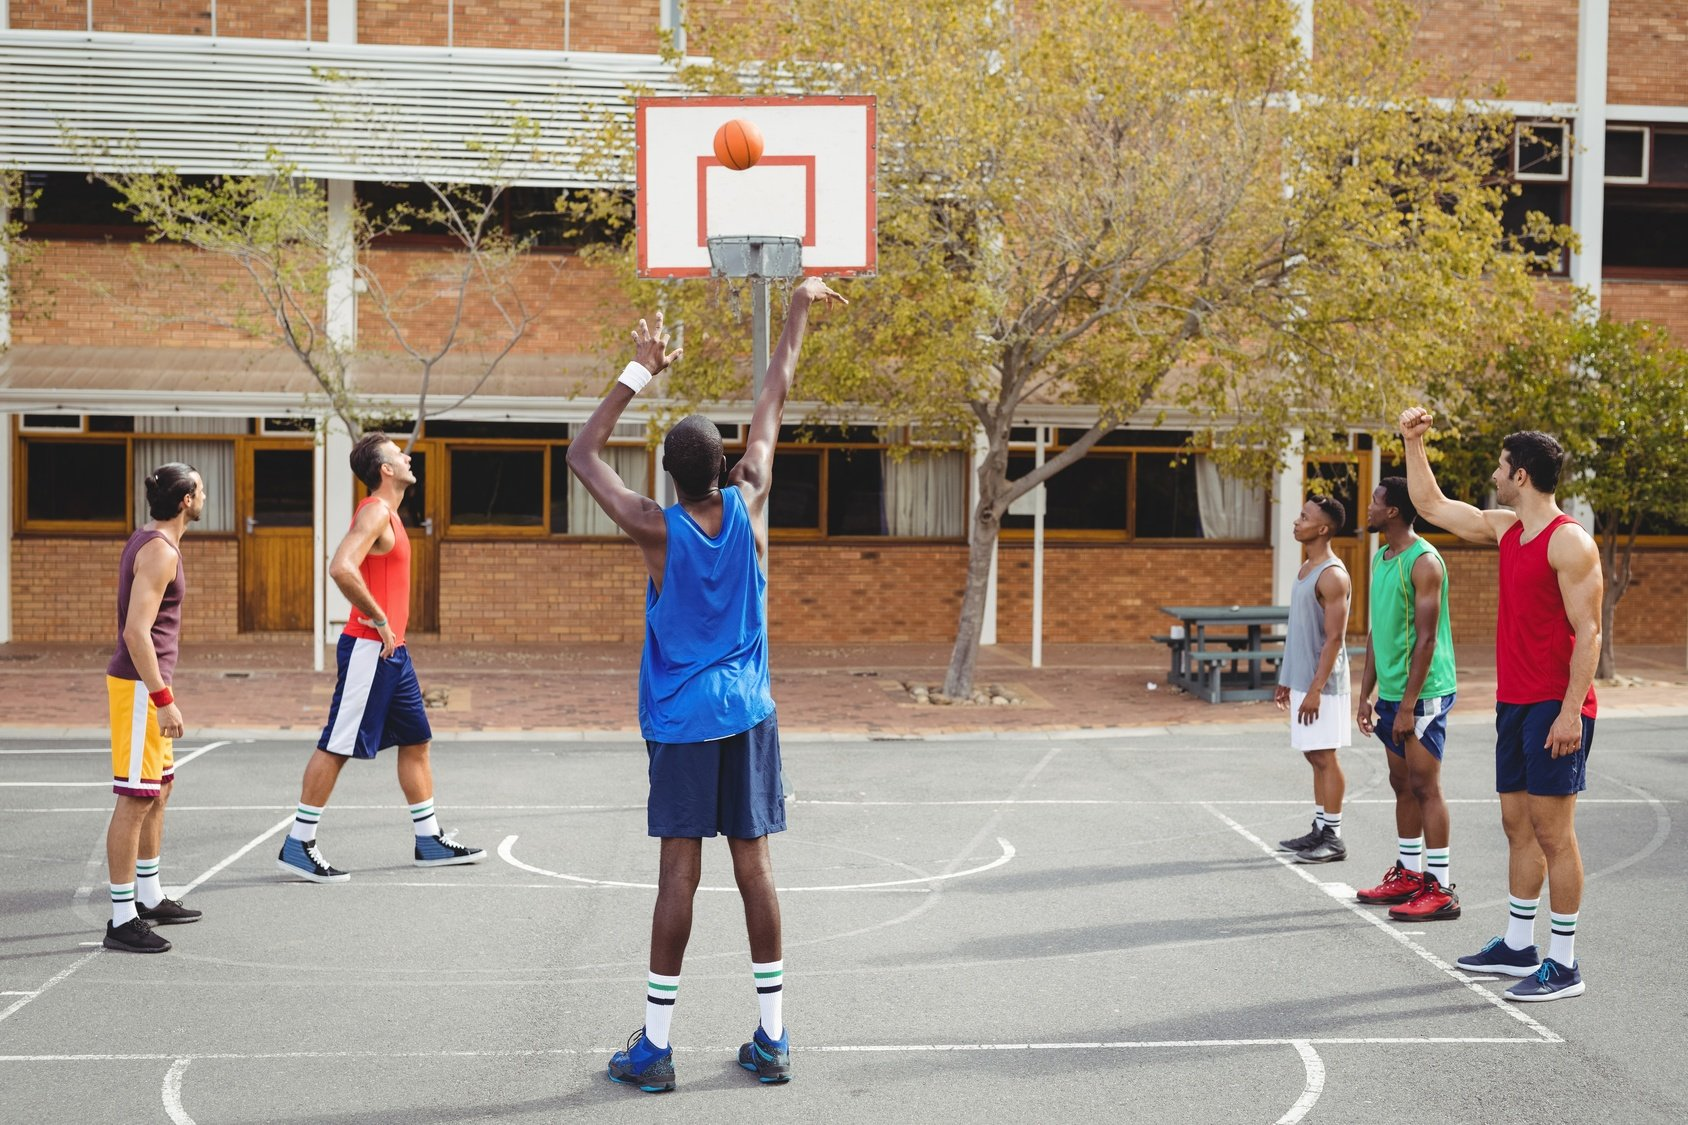 Best Basketball Shooting Drills - Make Training More Fun